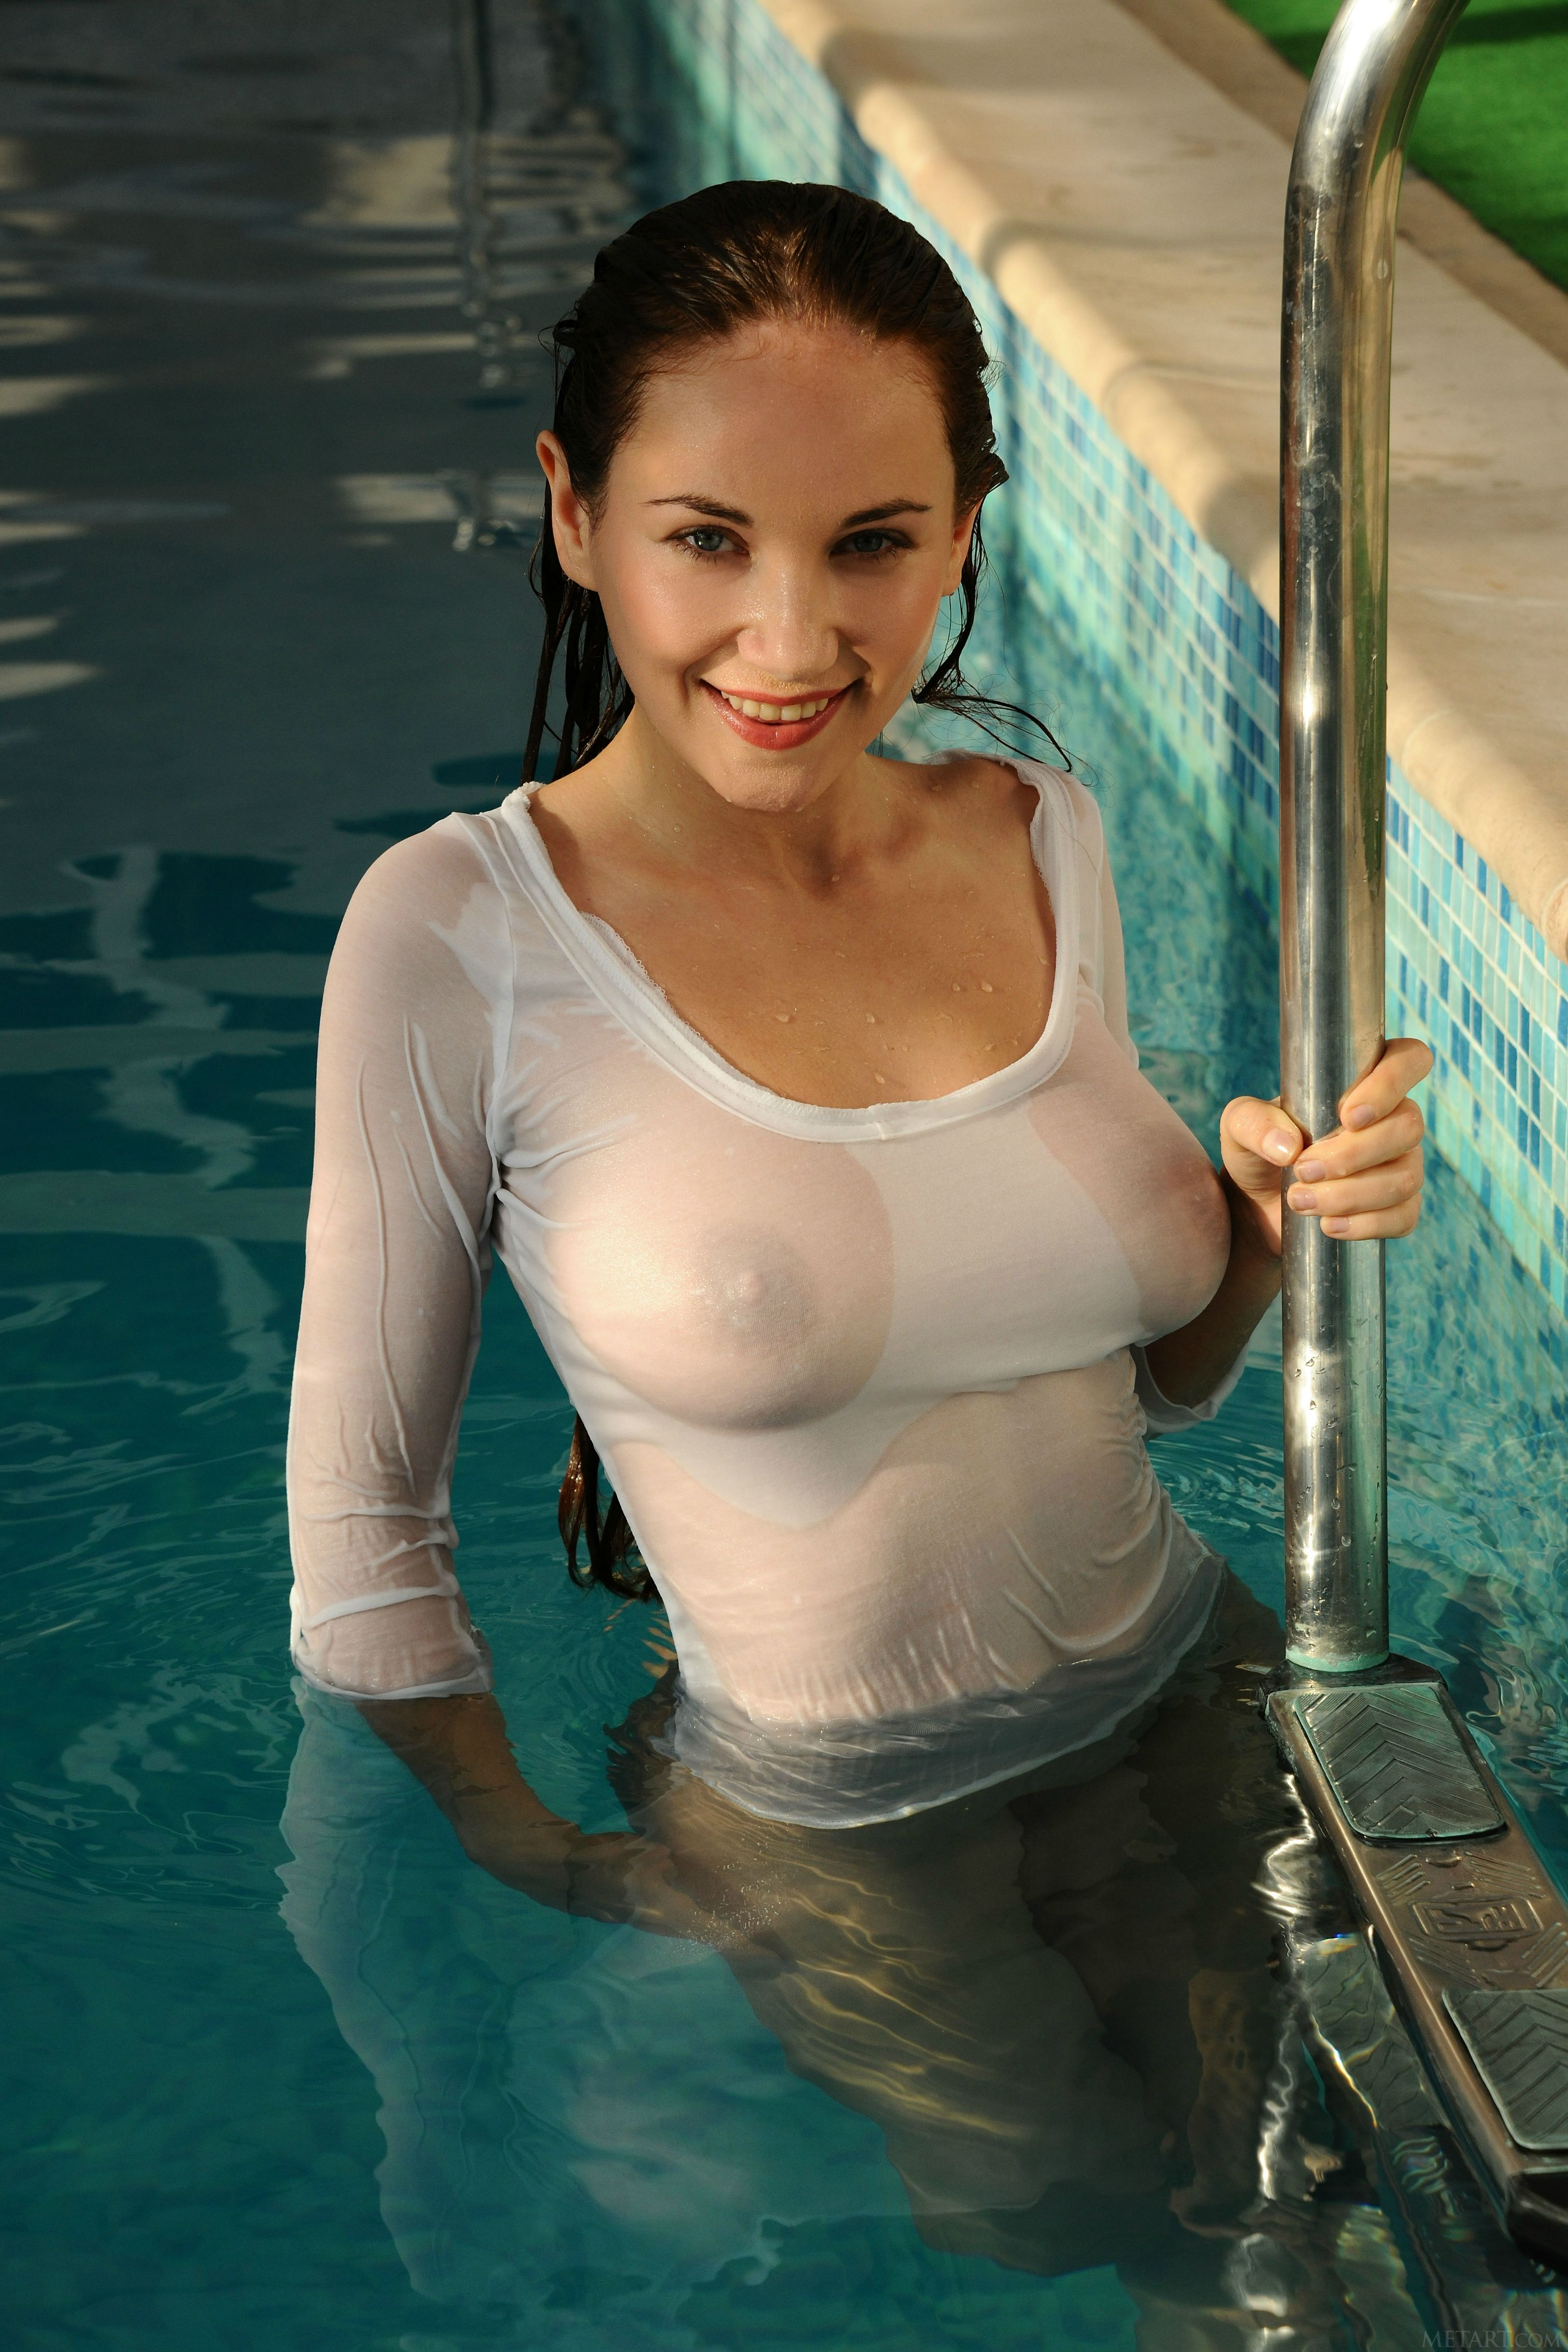 Remarkable, very wet tshirt boobs the question